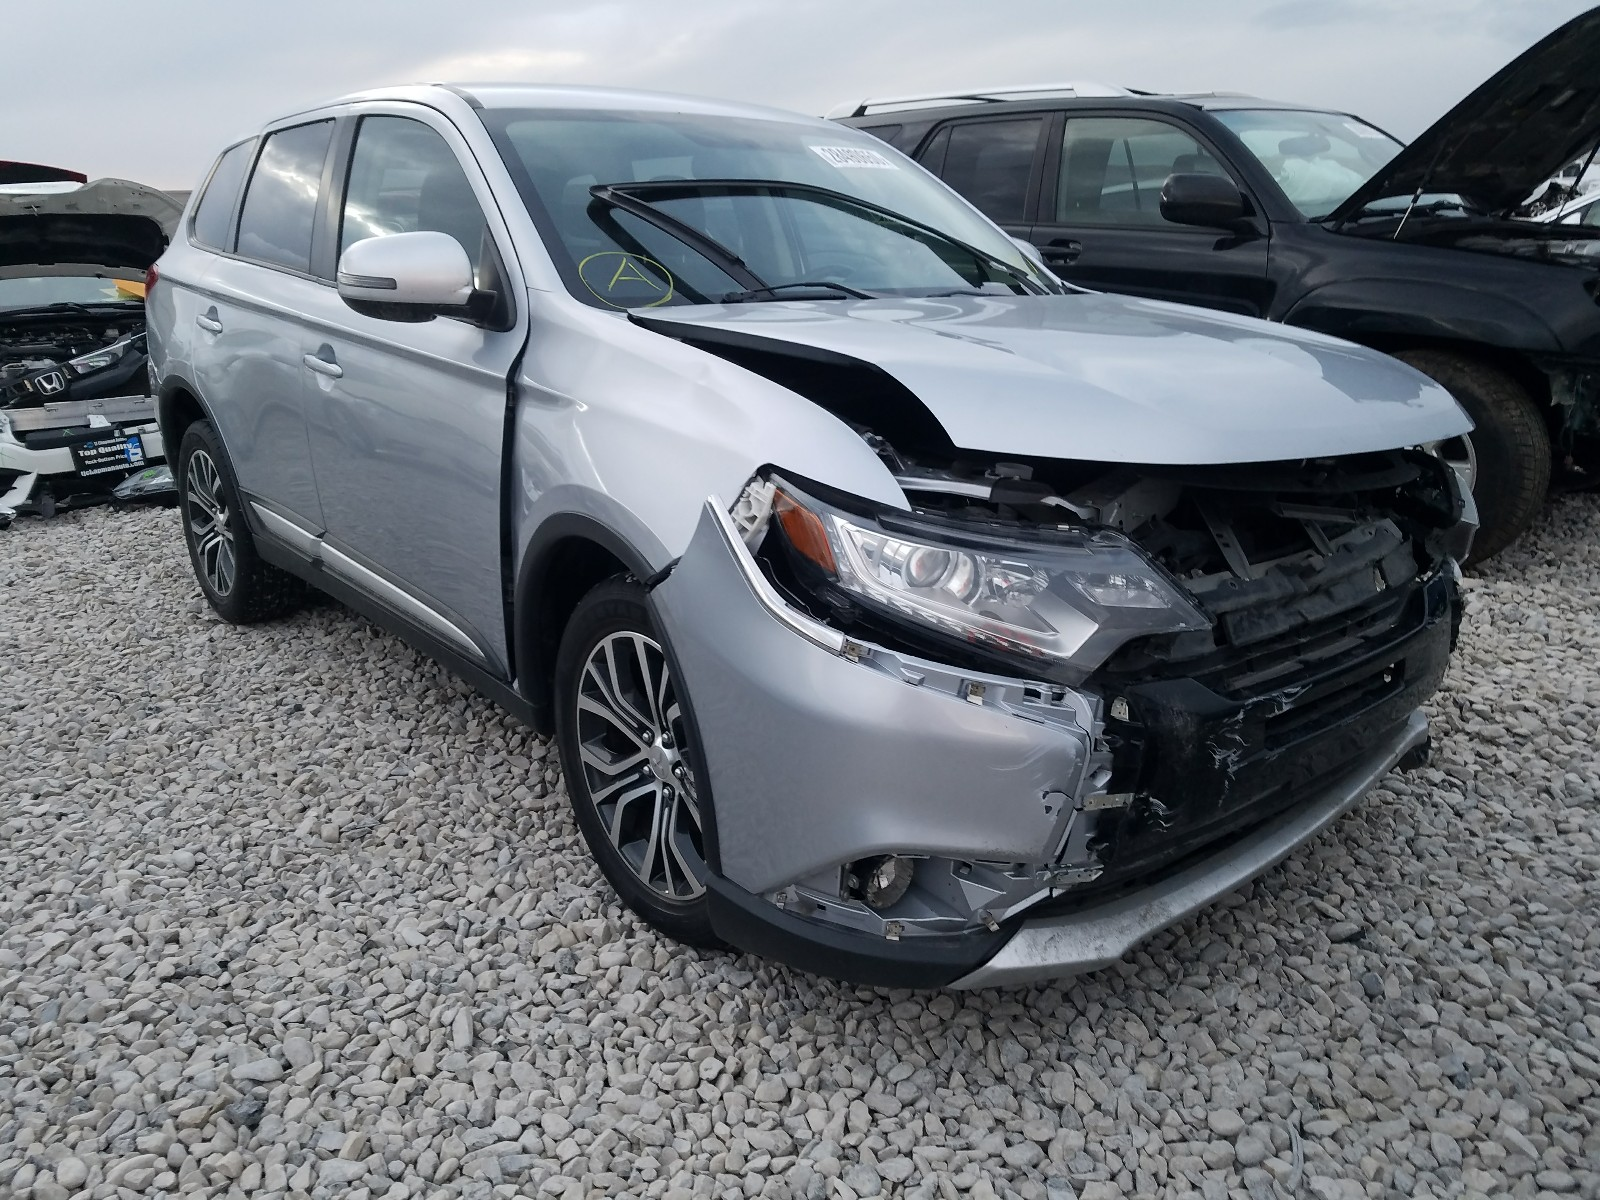 JA4AD3A37HZ043268 - 2017 Mitsubishi Outlander 2.4L Left View